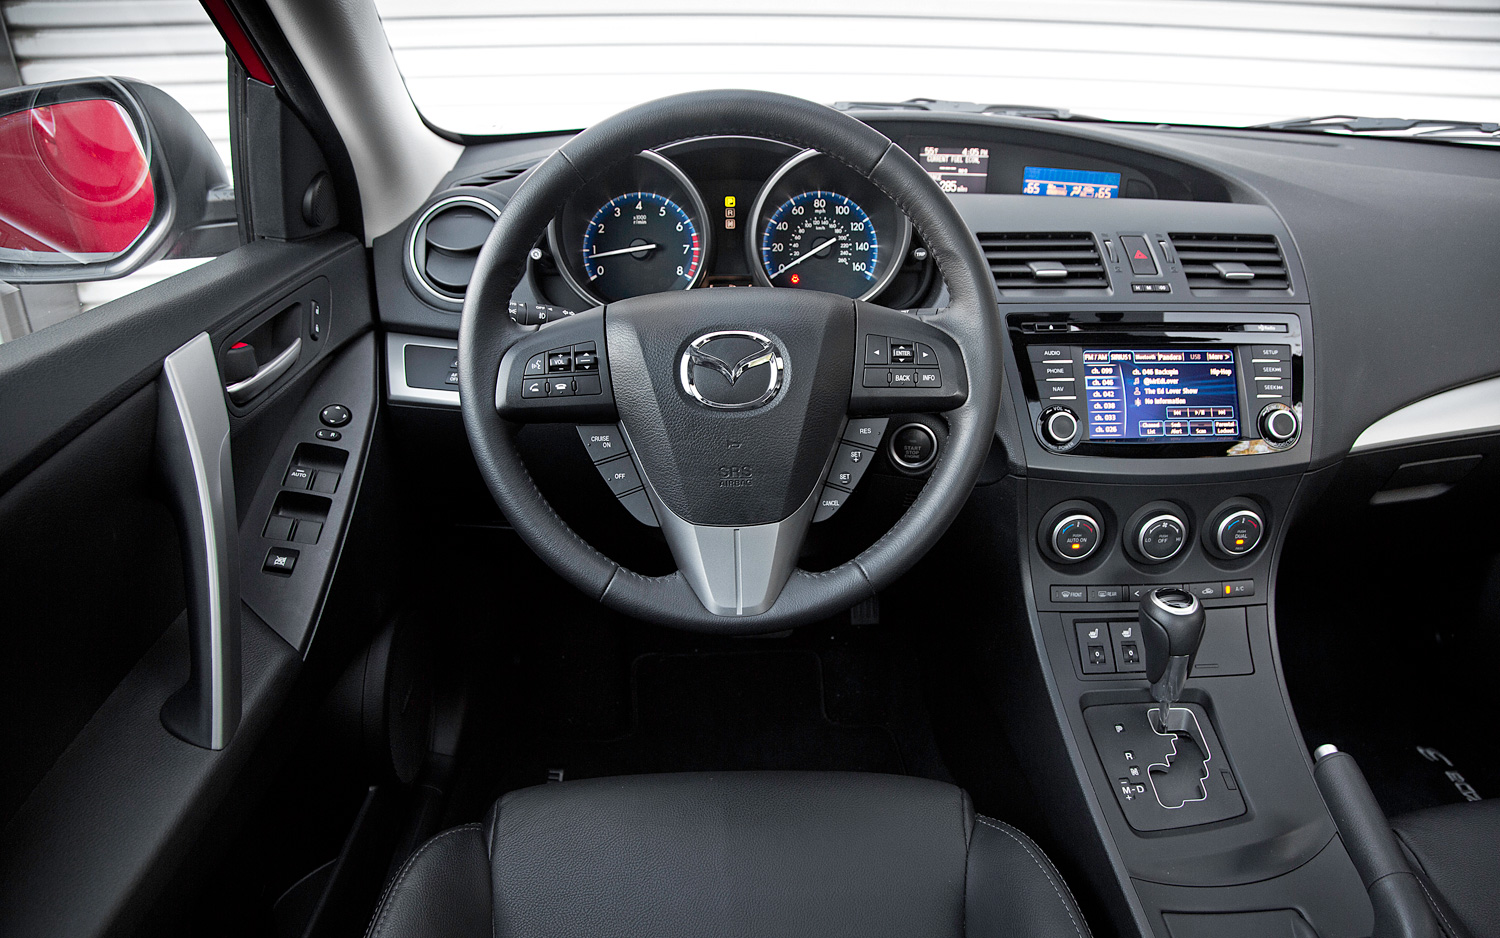 New 2013 Mazda 3 Review All About Cars